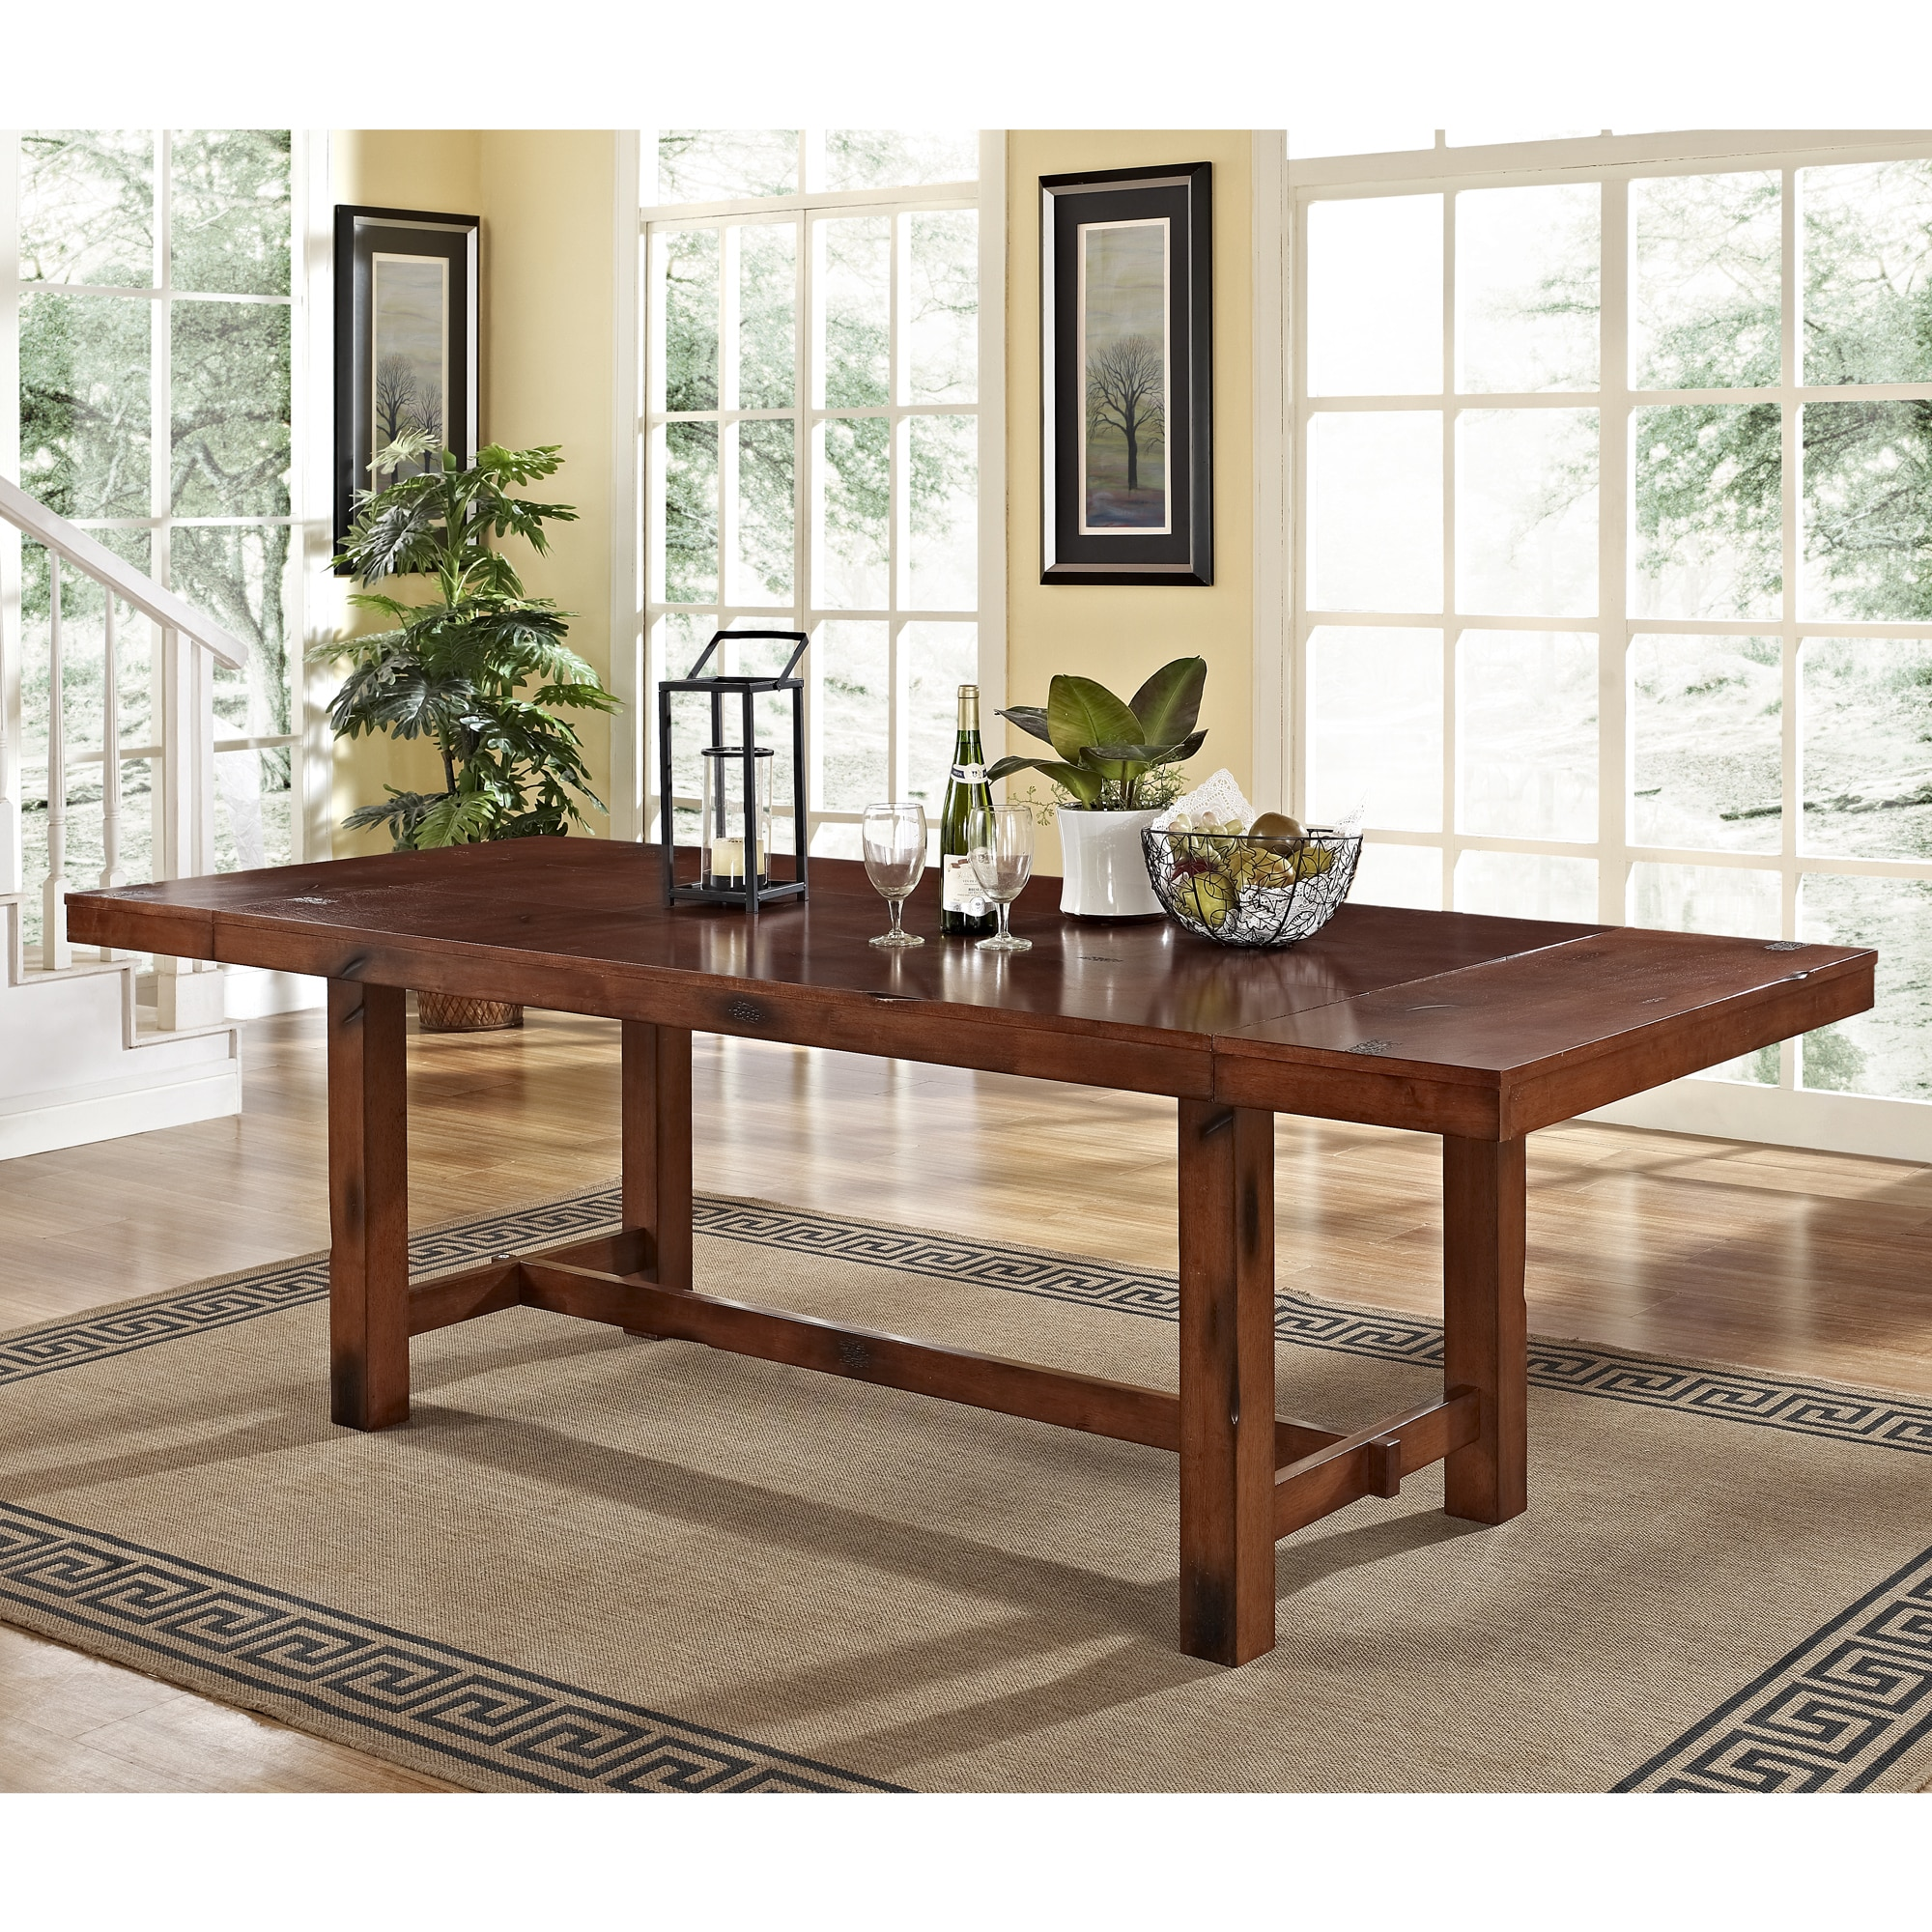 Distressed Dark Oak Wood Dining Table Overstock Shopping